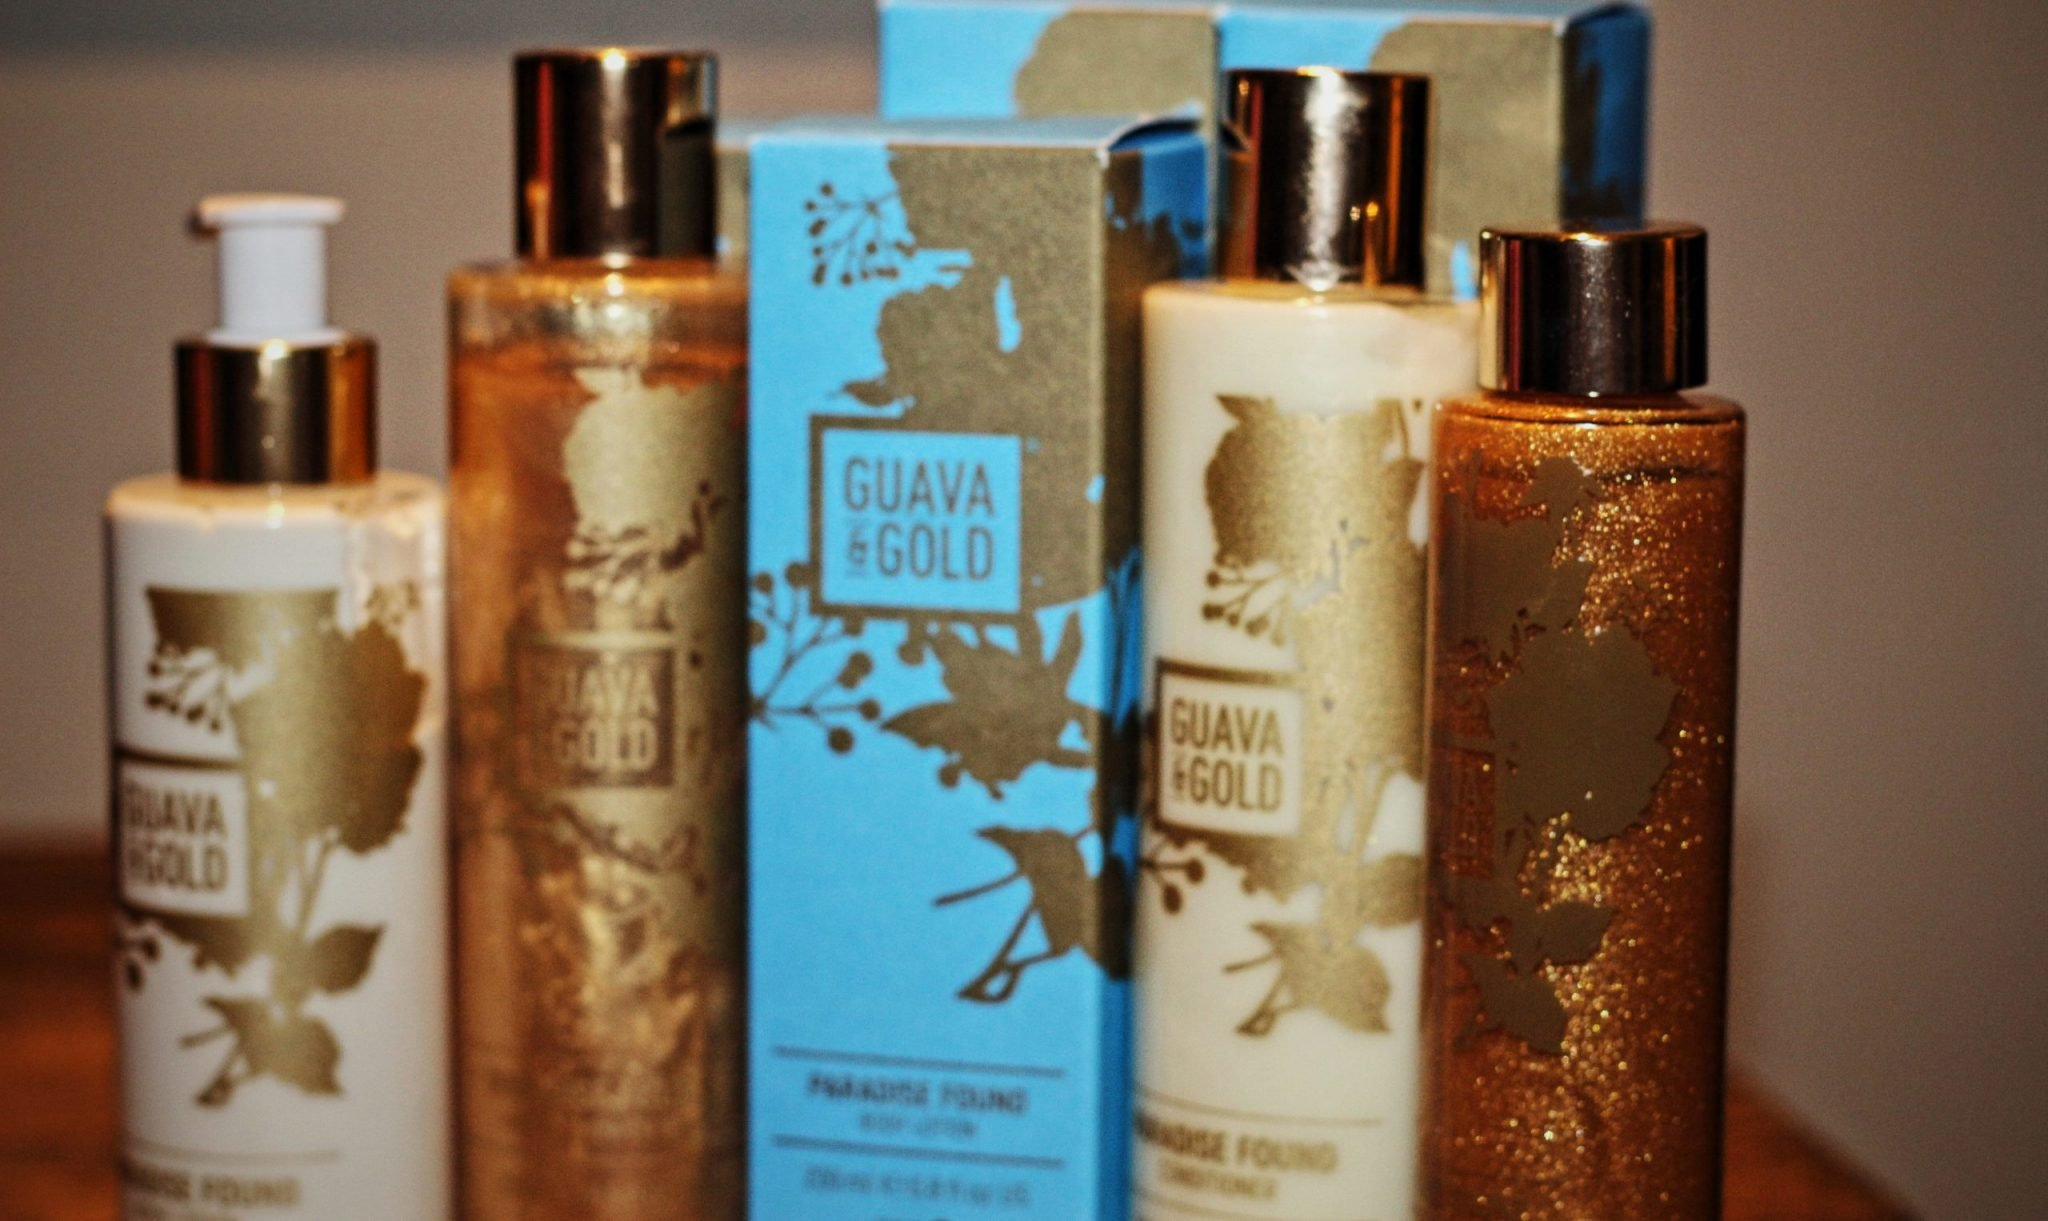 vegan animal friendly beauty products - The Style of Laura Jane